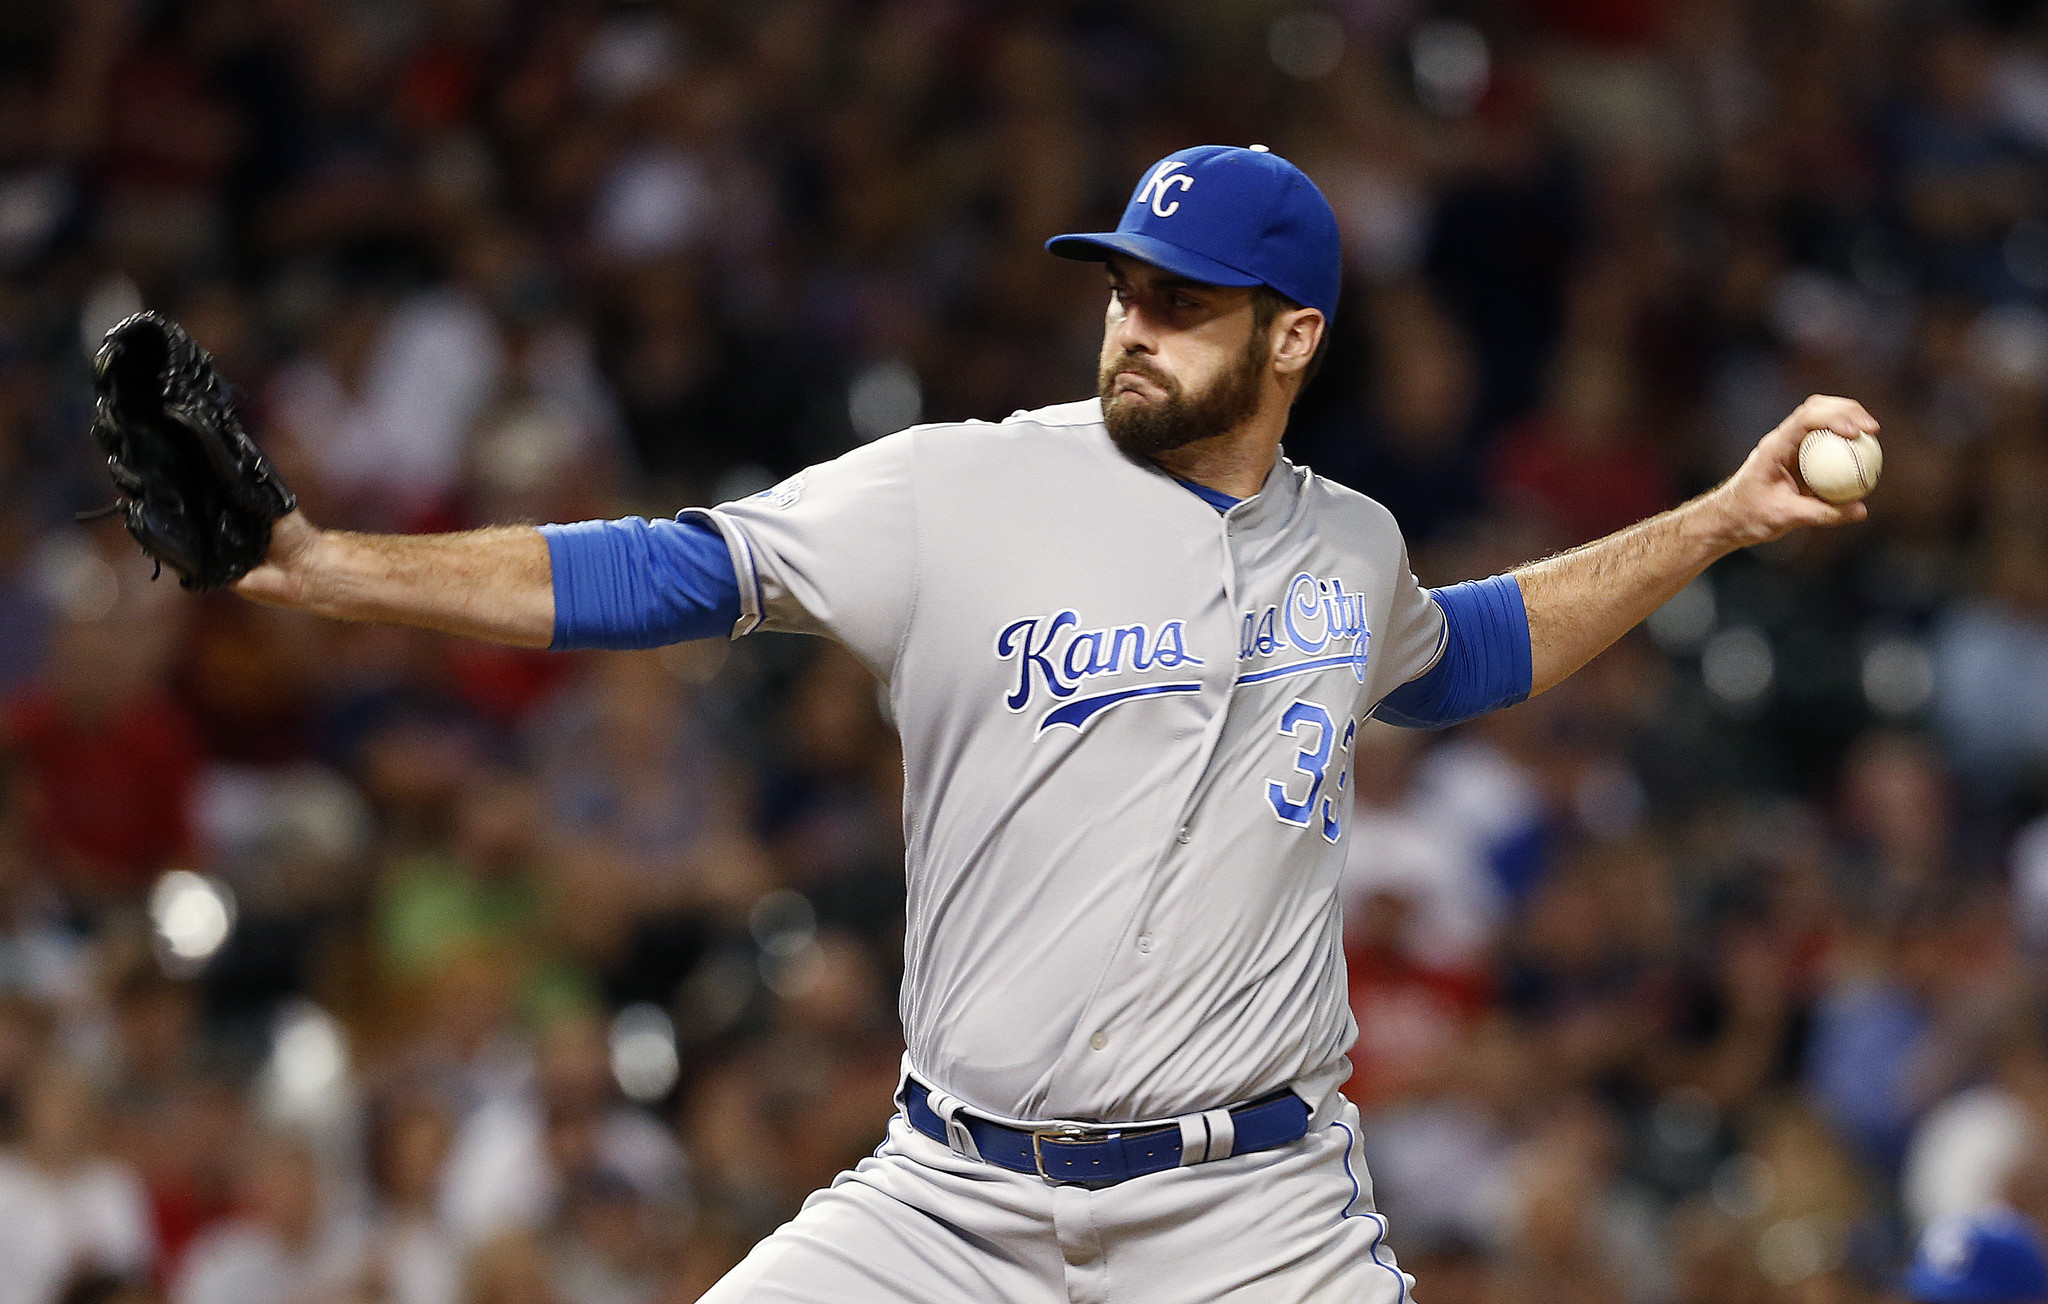 Ct-spring-training-weird-injuries-royals-reliever-barn-20170215